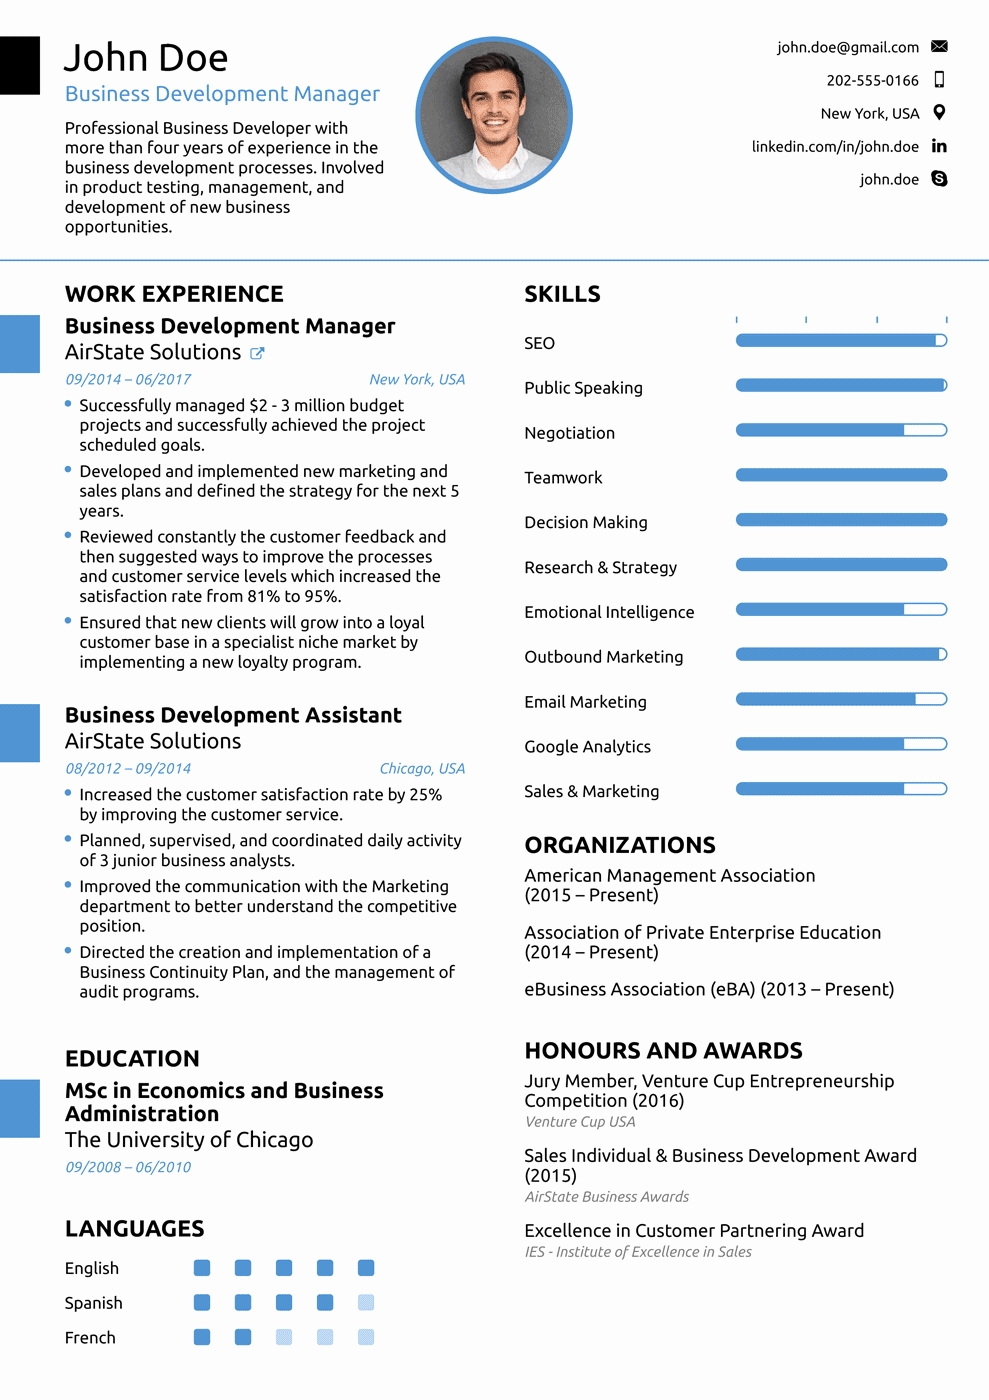 Professional Resume Template Free Best Of 2018 Professional Resume Templates as they Should Be [8 ]